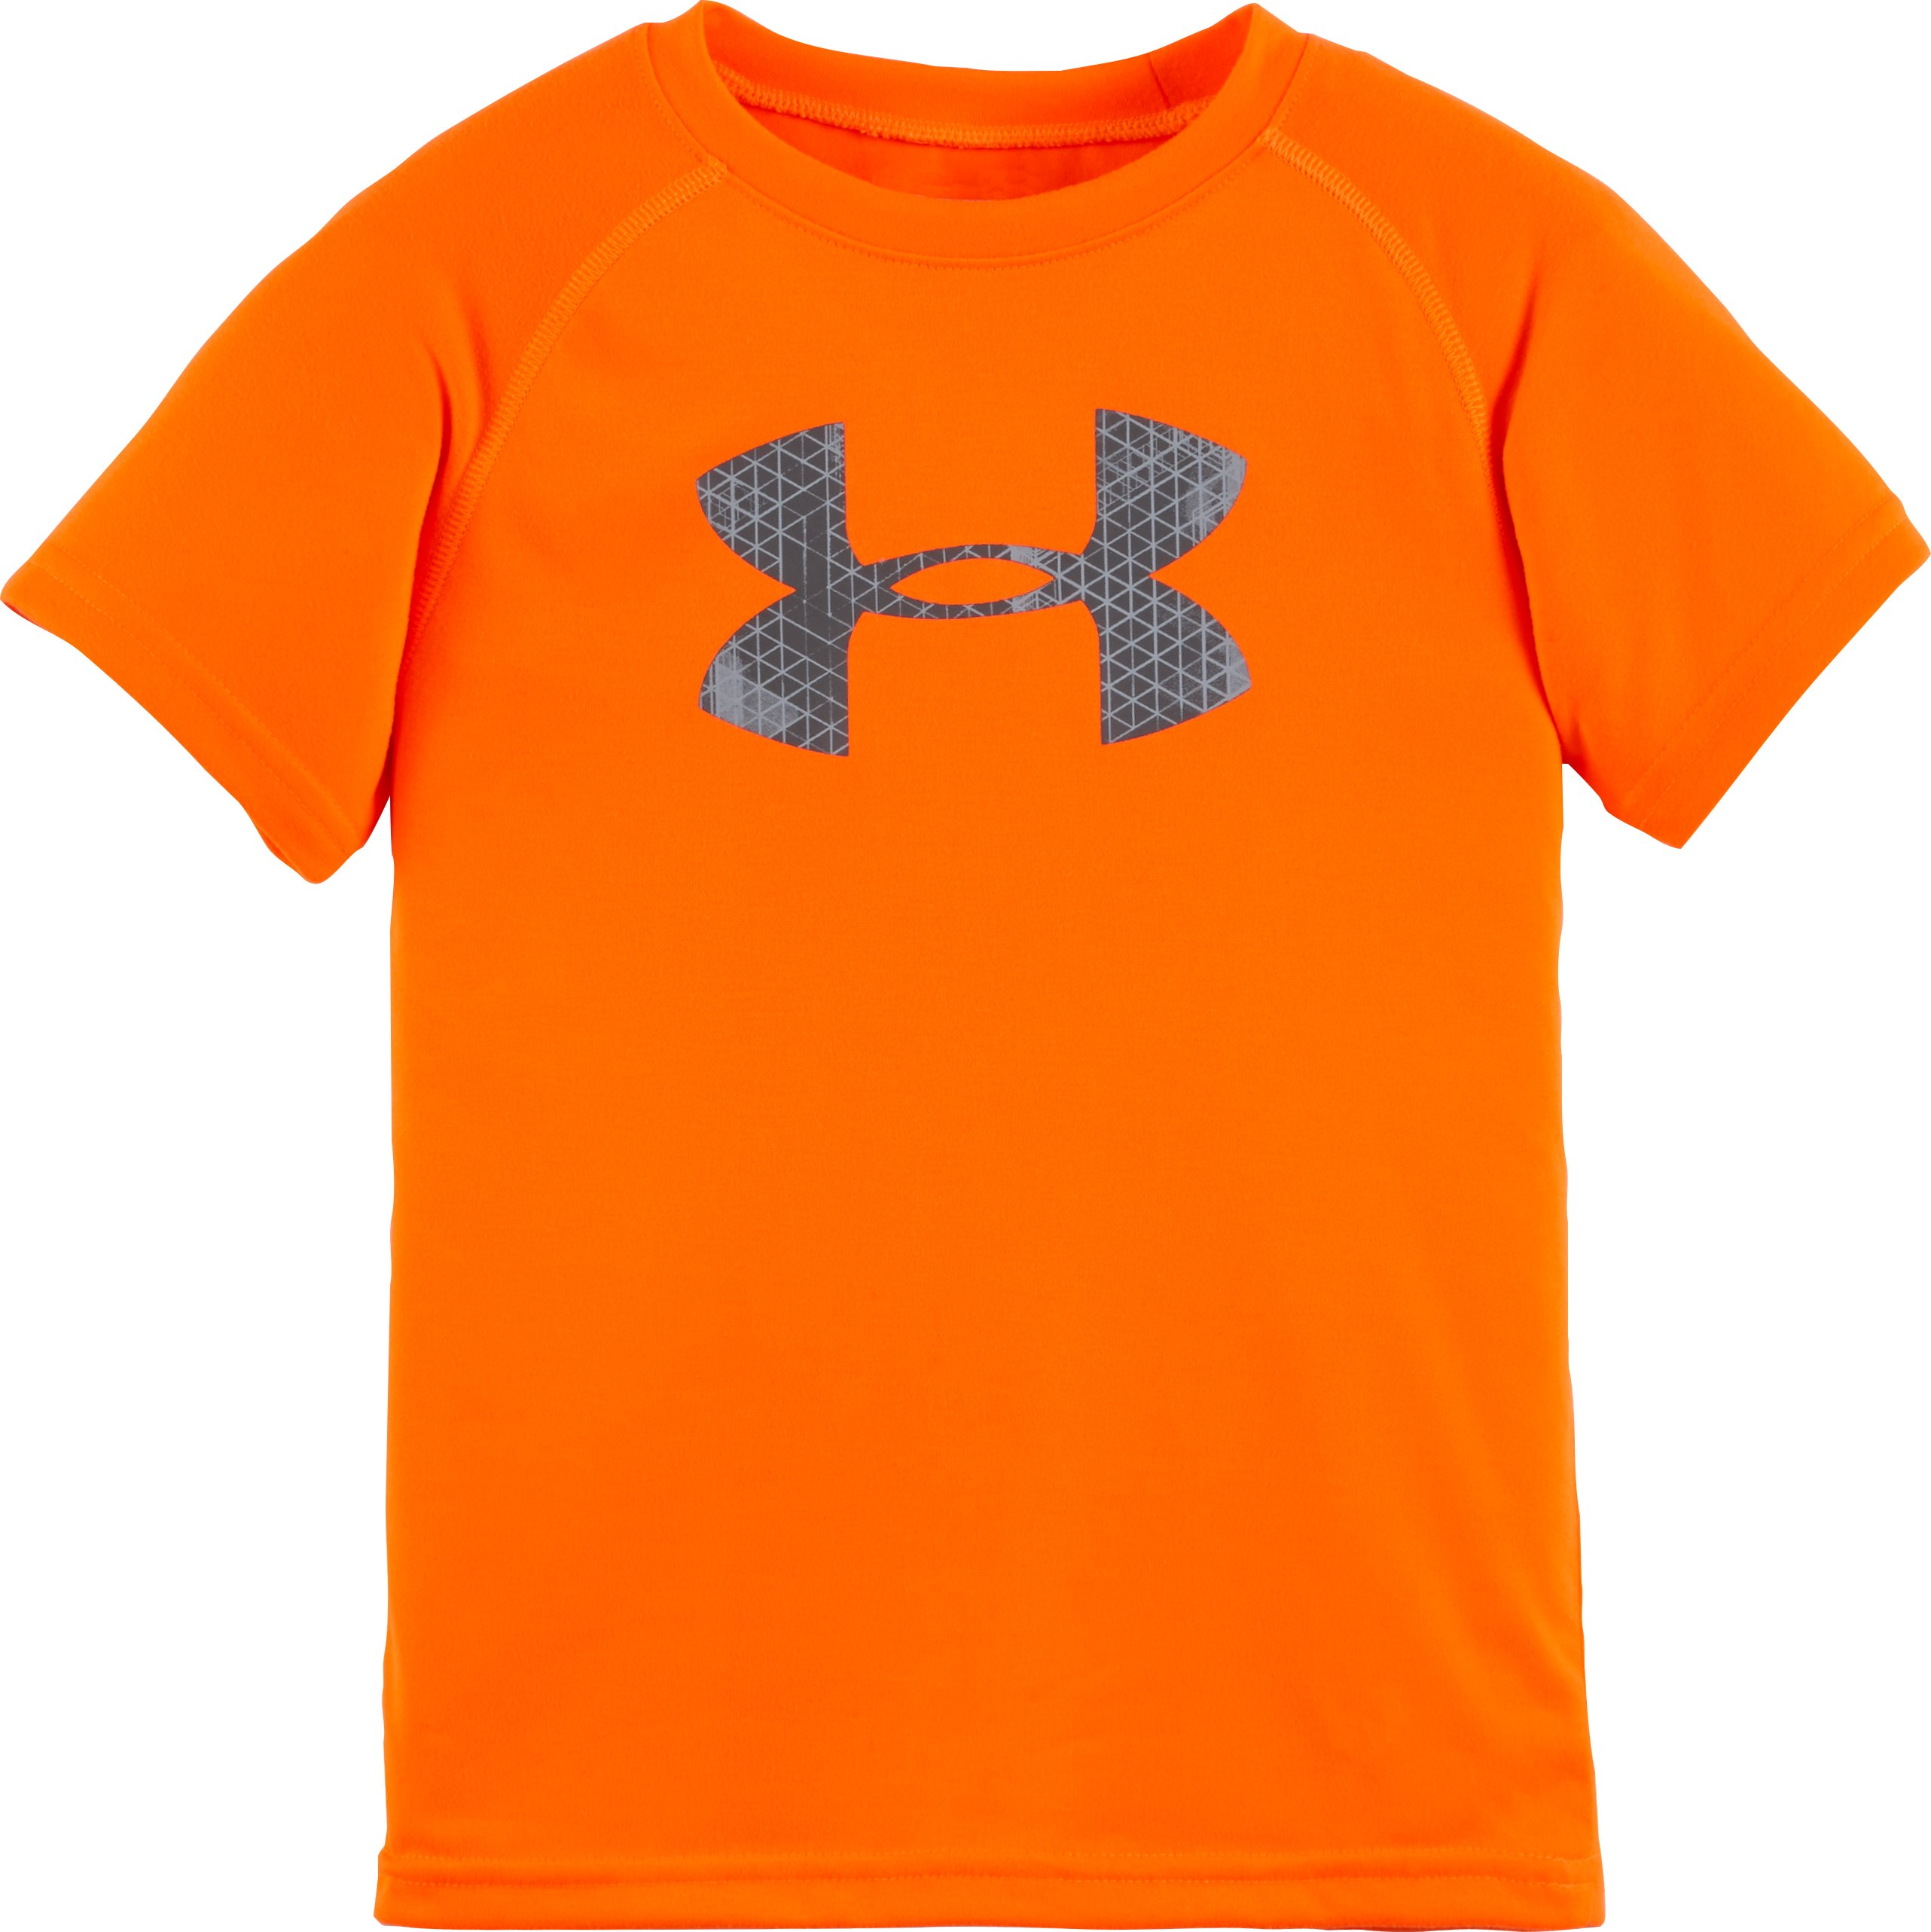 Boys' Pre-School UA Hexascope Big Logo Short Sleeve T-Shirt, Blaze Orange, Laydown